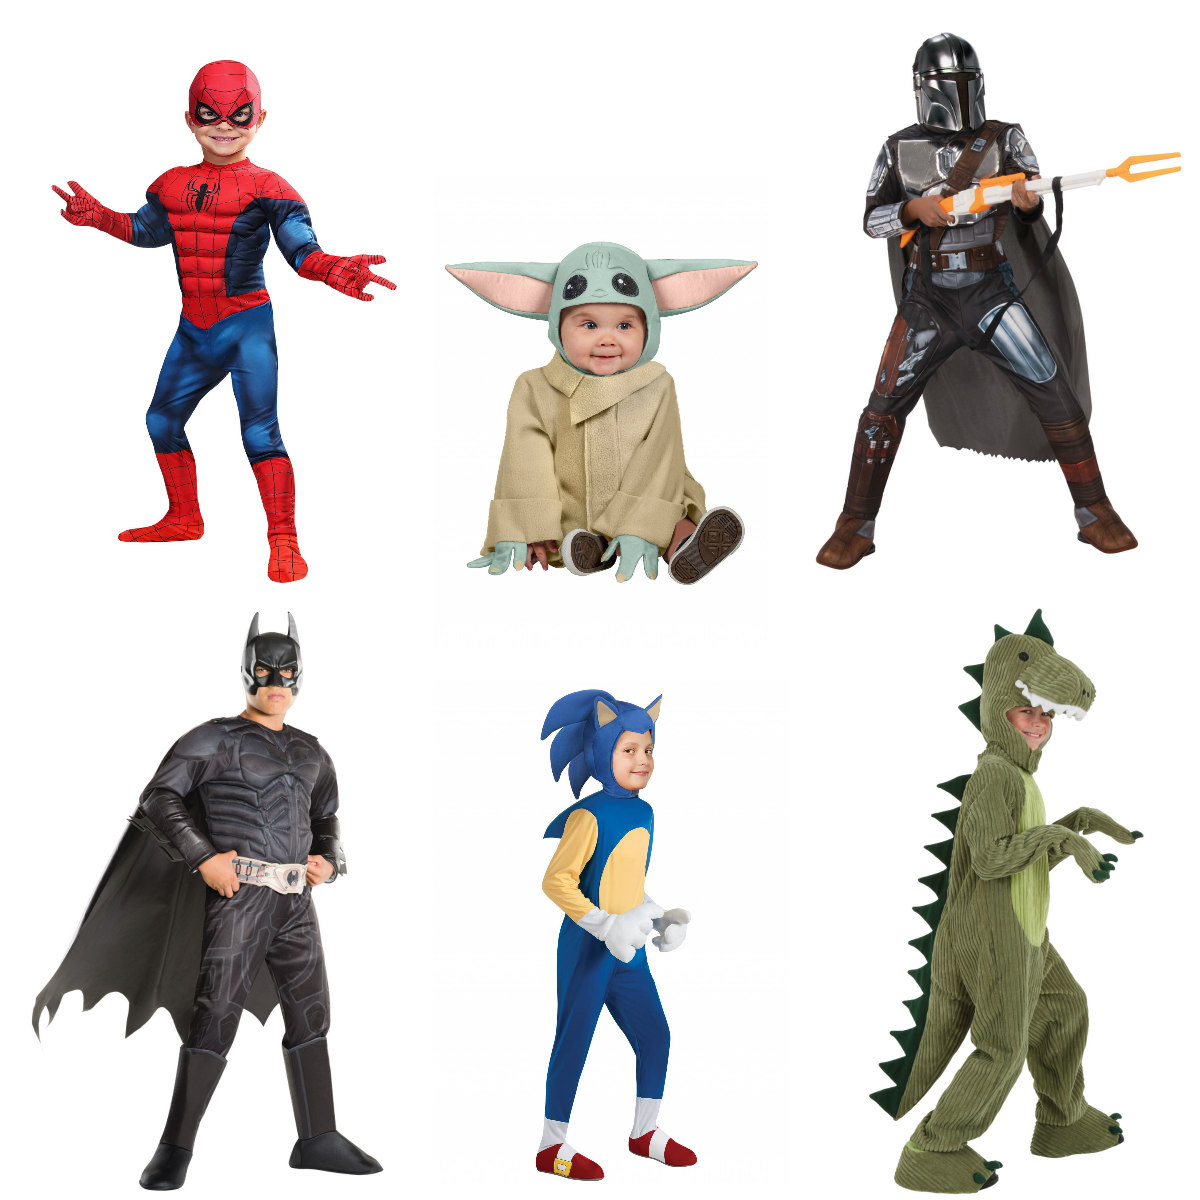 Popular Halloween Costumes for Boys in 2020